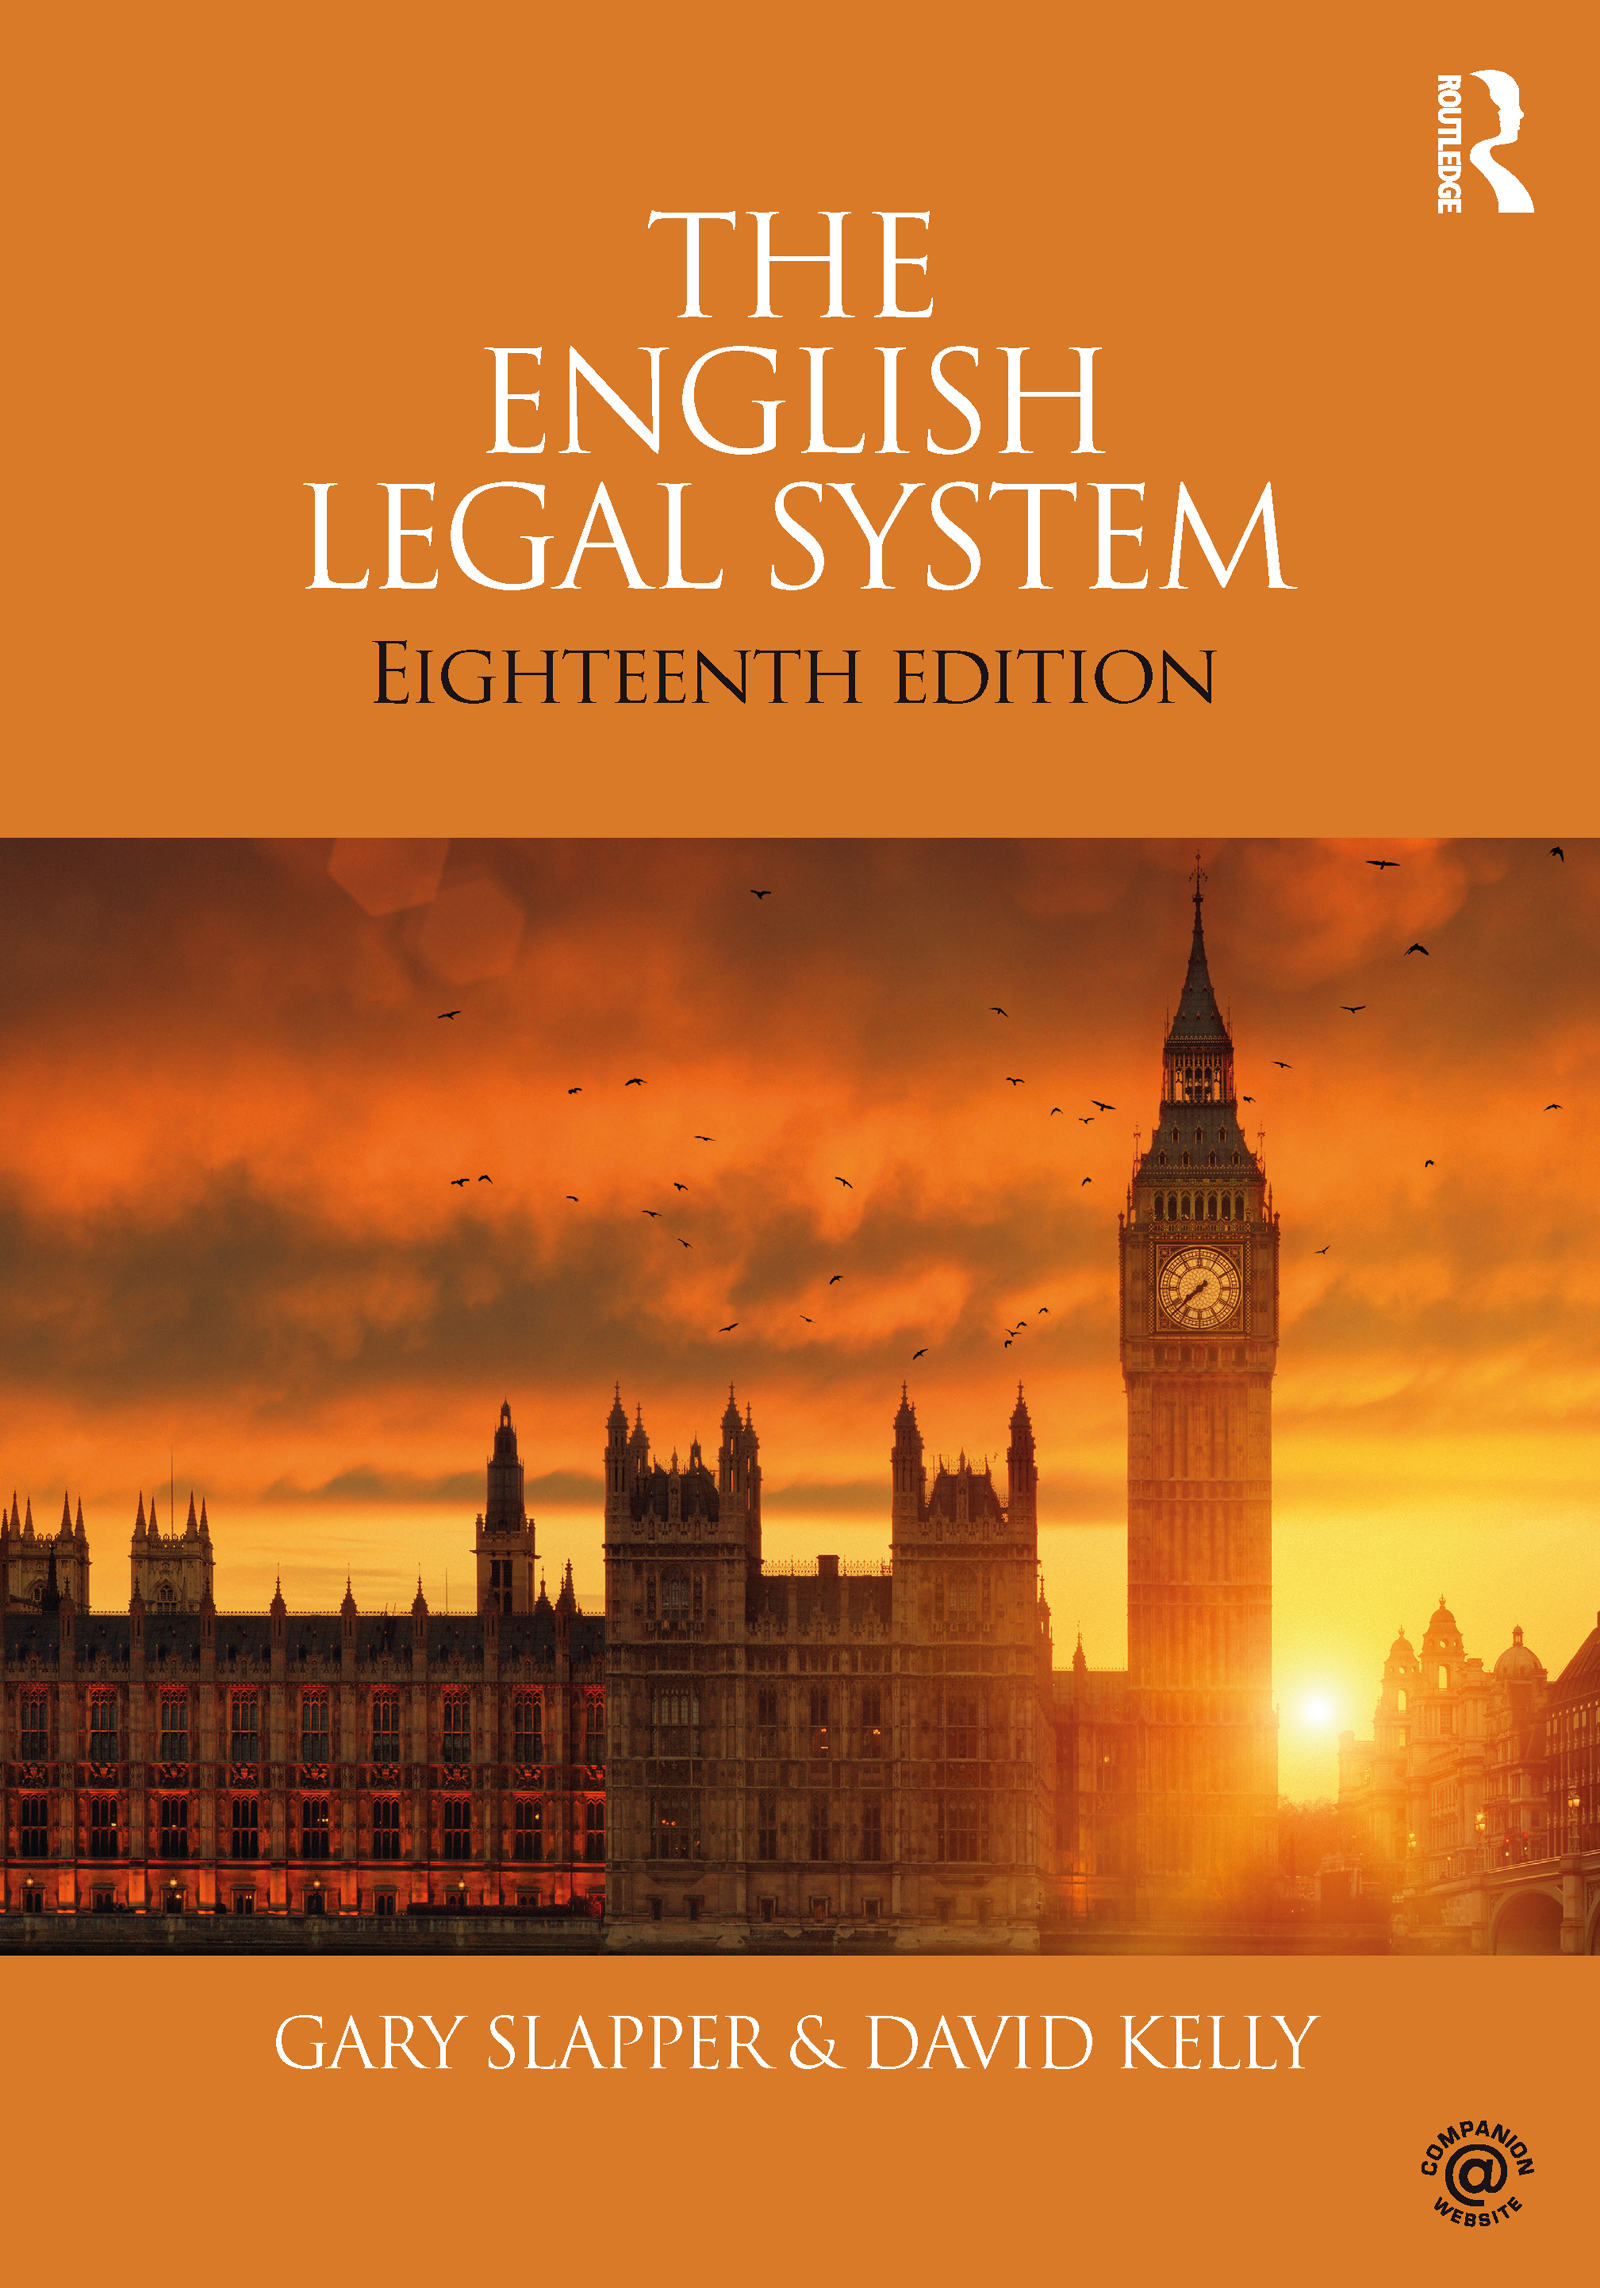 The English Legal System book cover